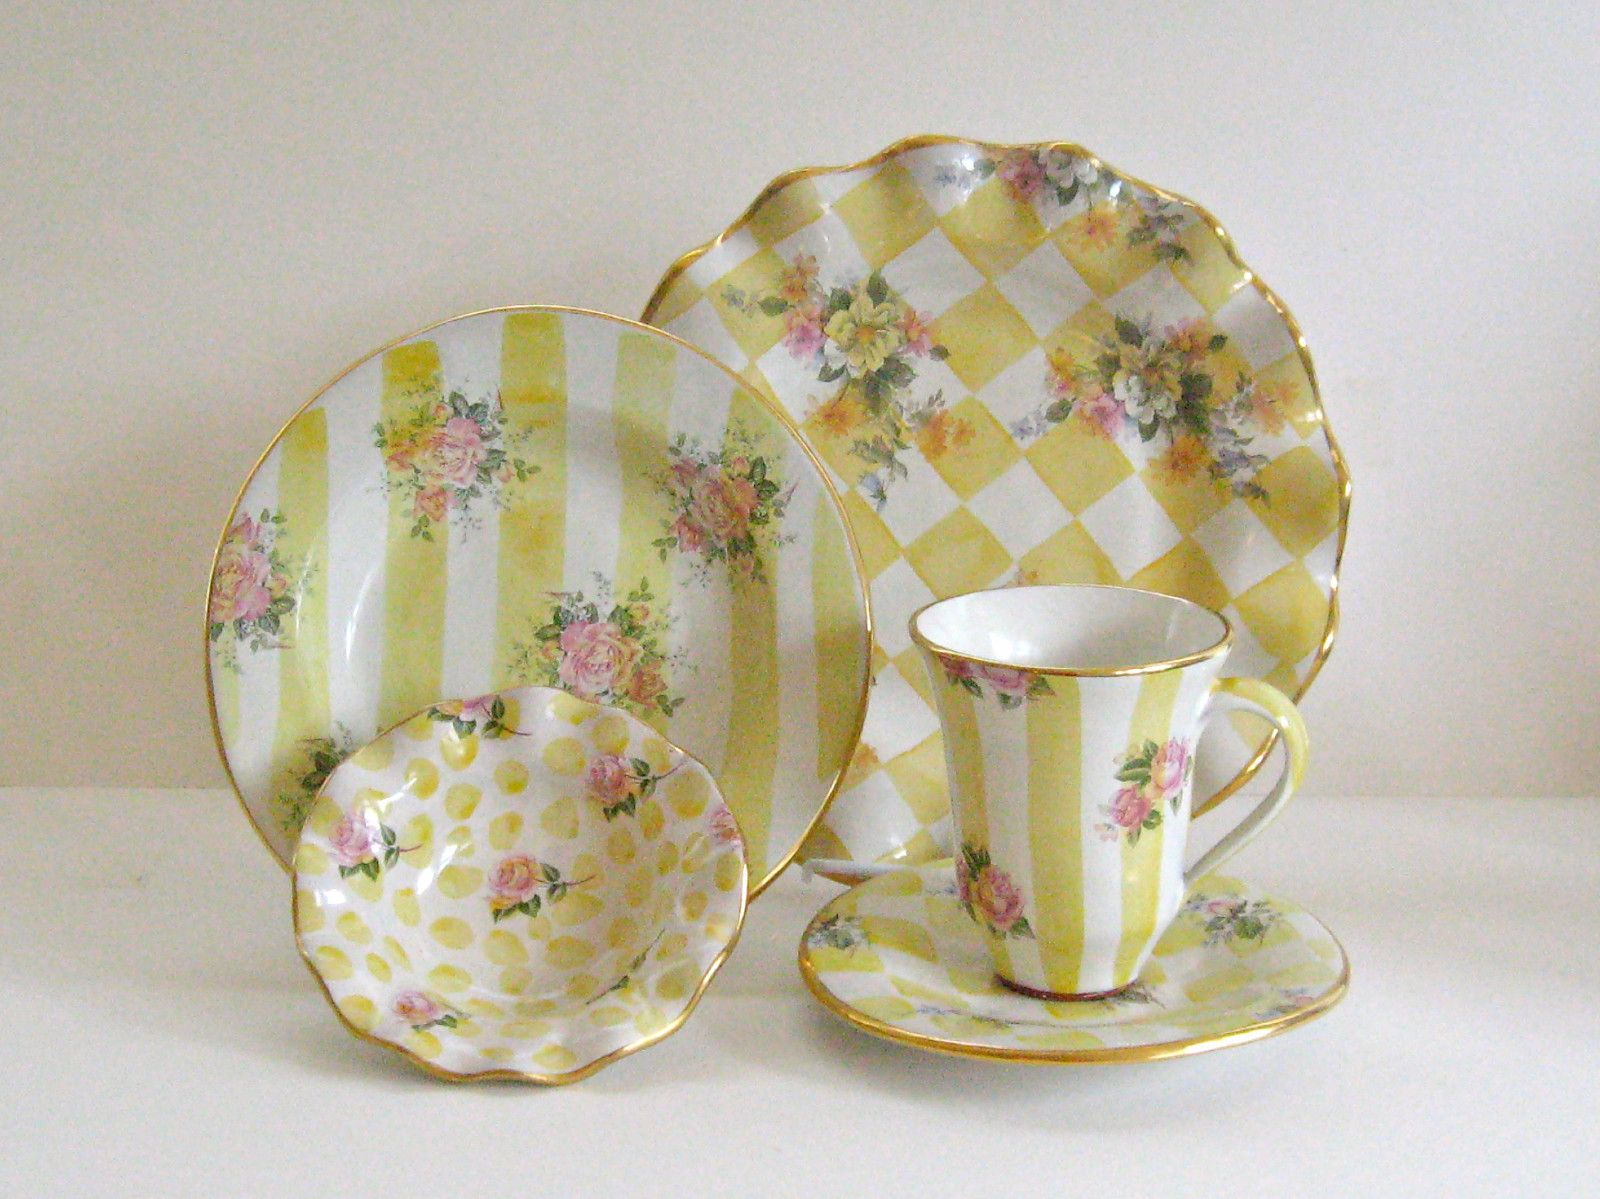 Mackenzie Childs Honeymoon Ceramic Pottery 5 Original Collector Dinnerware u002792 | eBay & Mackenzie Childs Honeymoon Ceramic Pottery 5 Original Collector ...